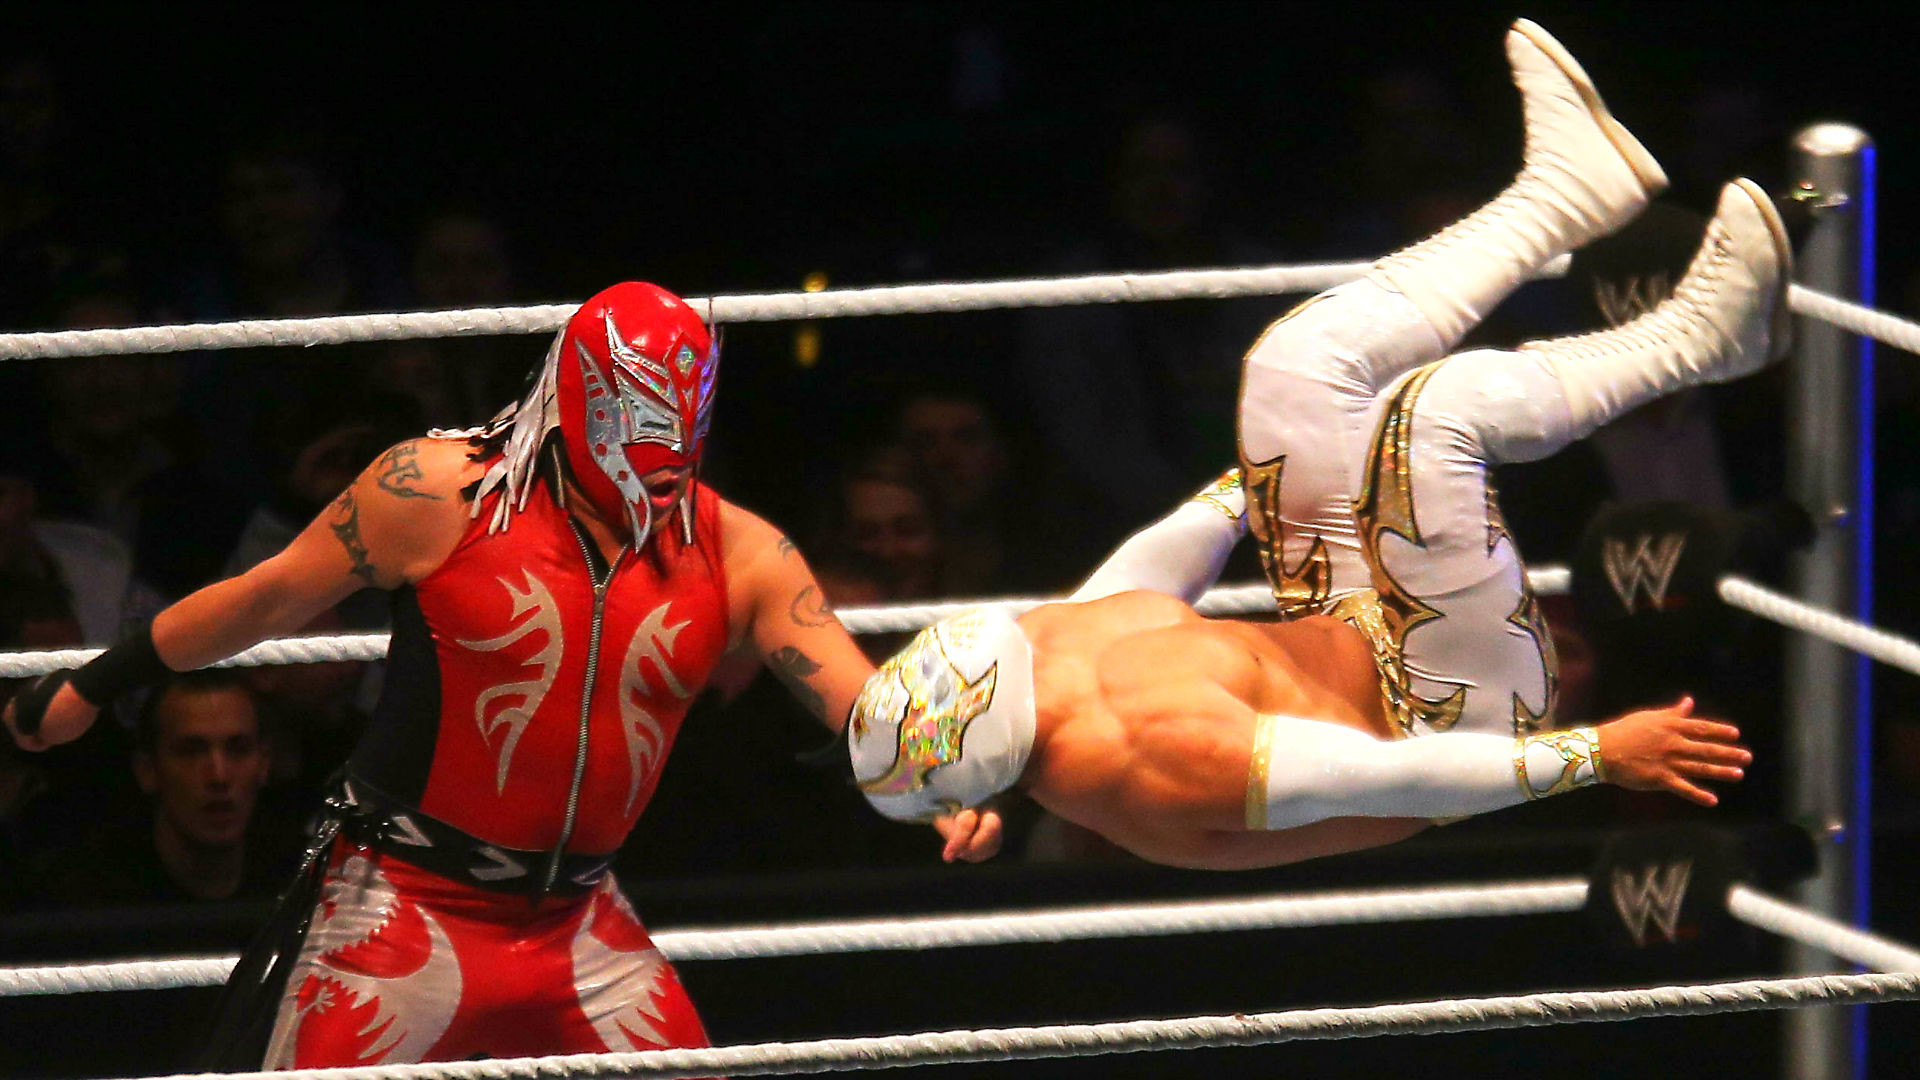 1920x1080 Rey Mysterio Jr., AAA bringing lucha libre back with Triplemania XXIII |  WWE | Sporting News